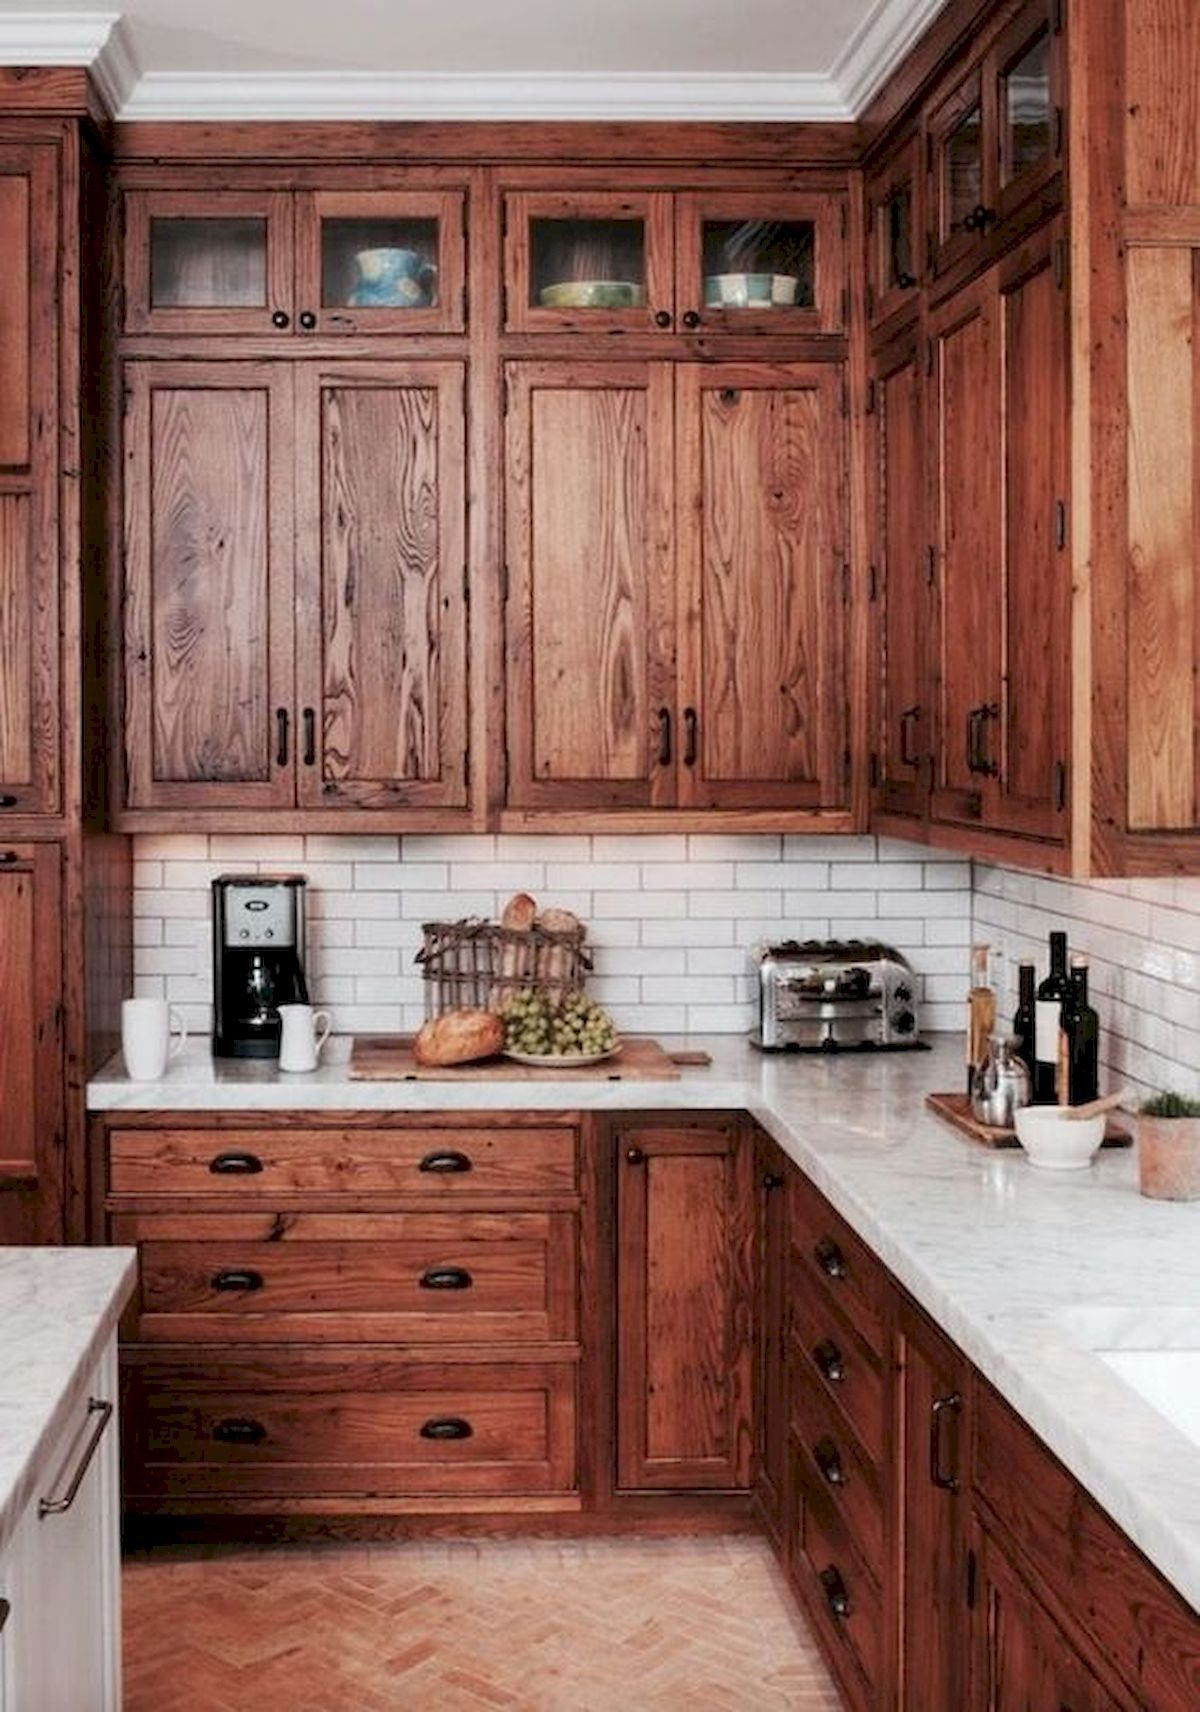 40 Best Farmhouse Kitchen Cabinets Design Ideas (12 #darkkitchencabinets